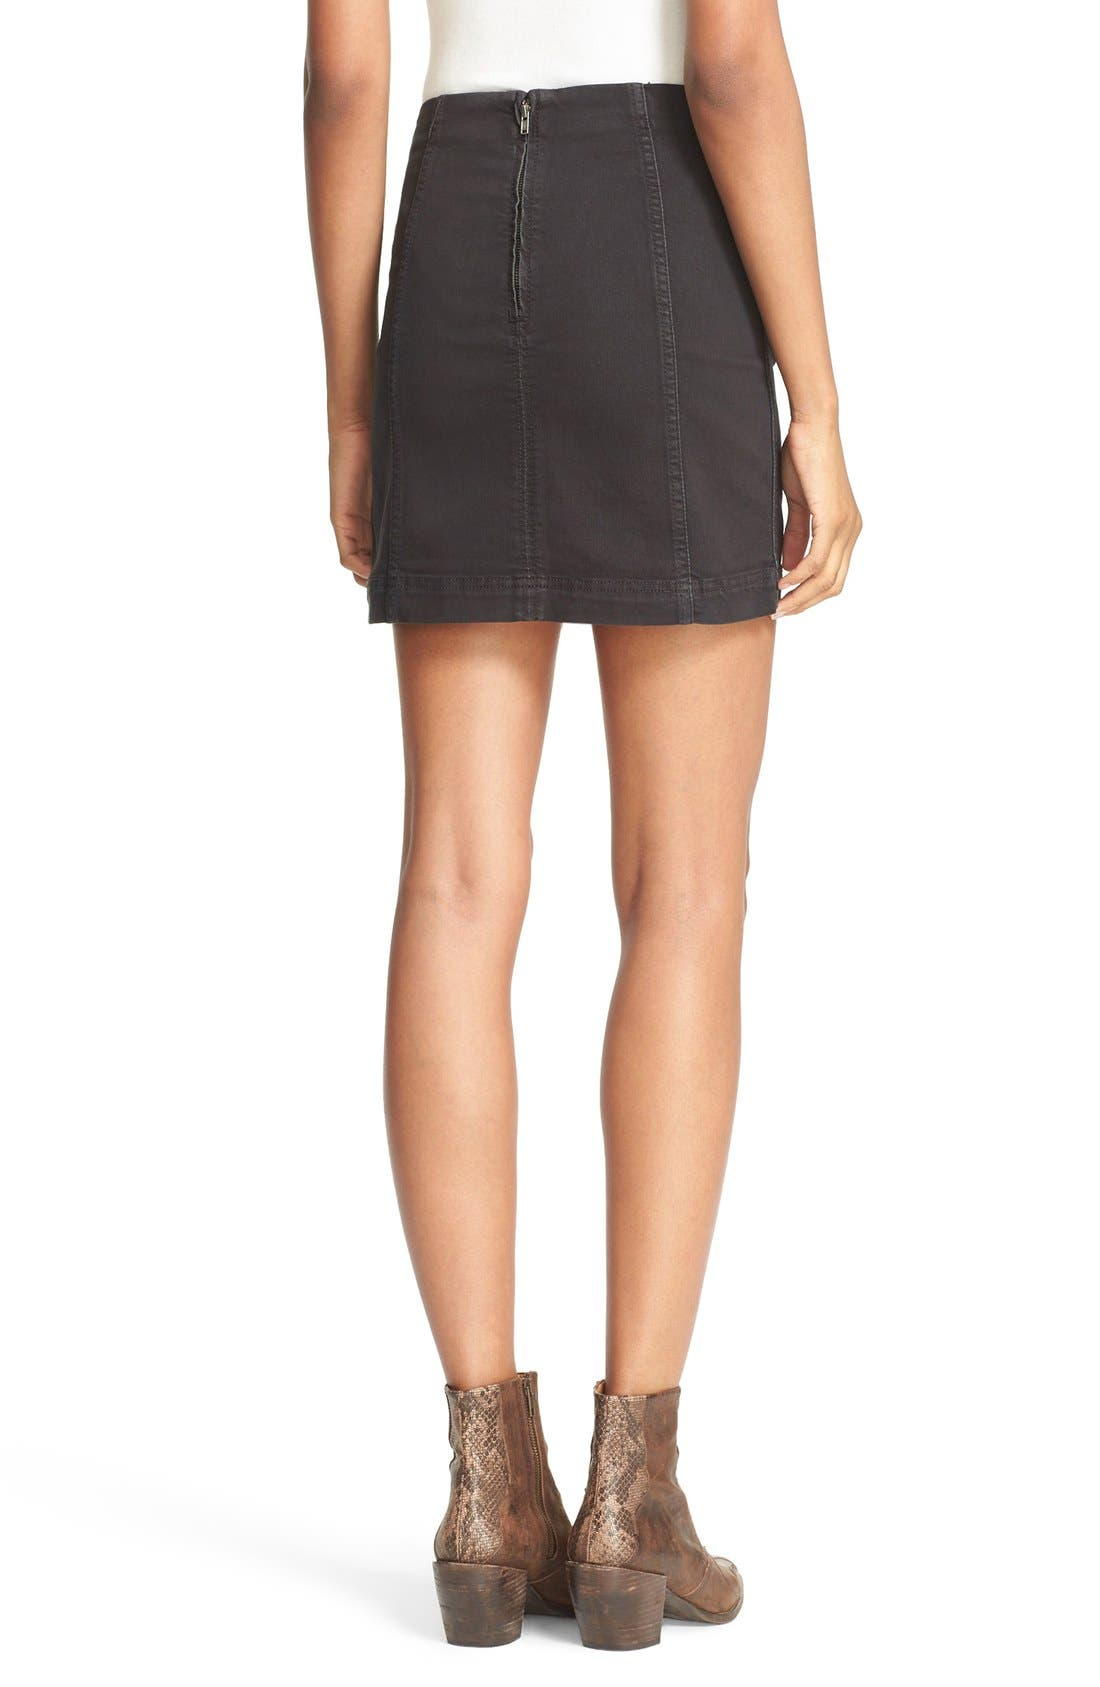 FREE PEOPLE, We the Free by Free People Modern Denim Miniskirt, Alternate thumbnail 2, color, 001